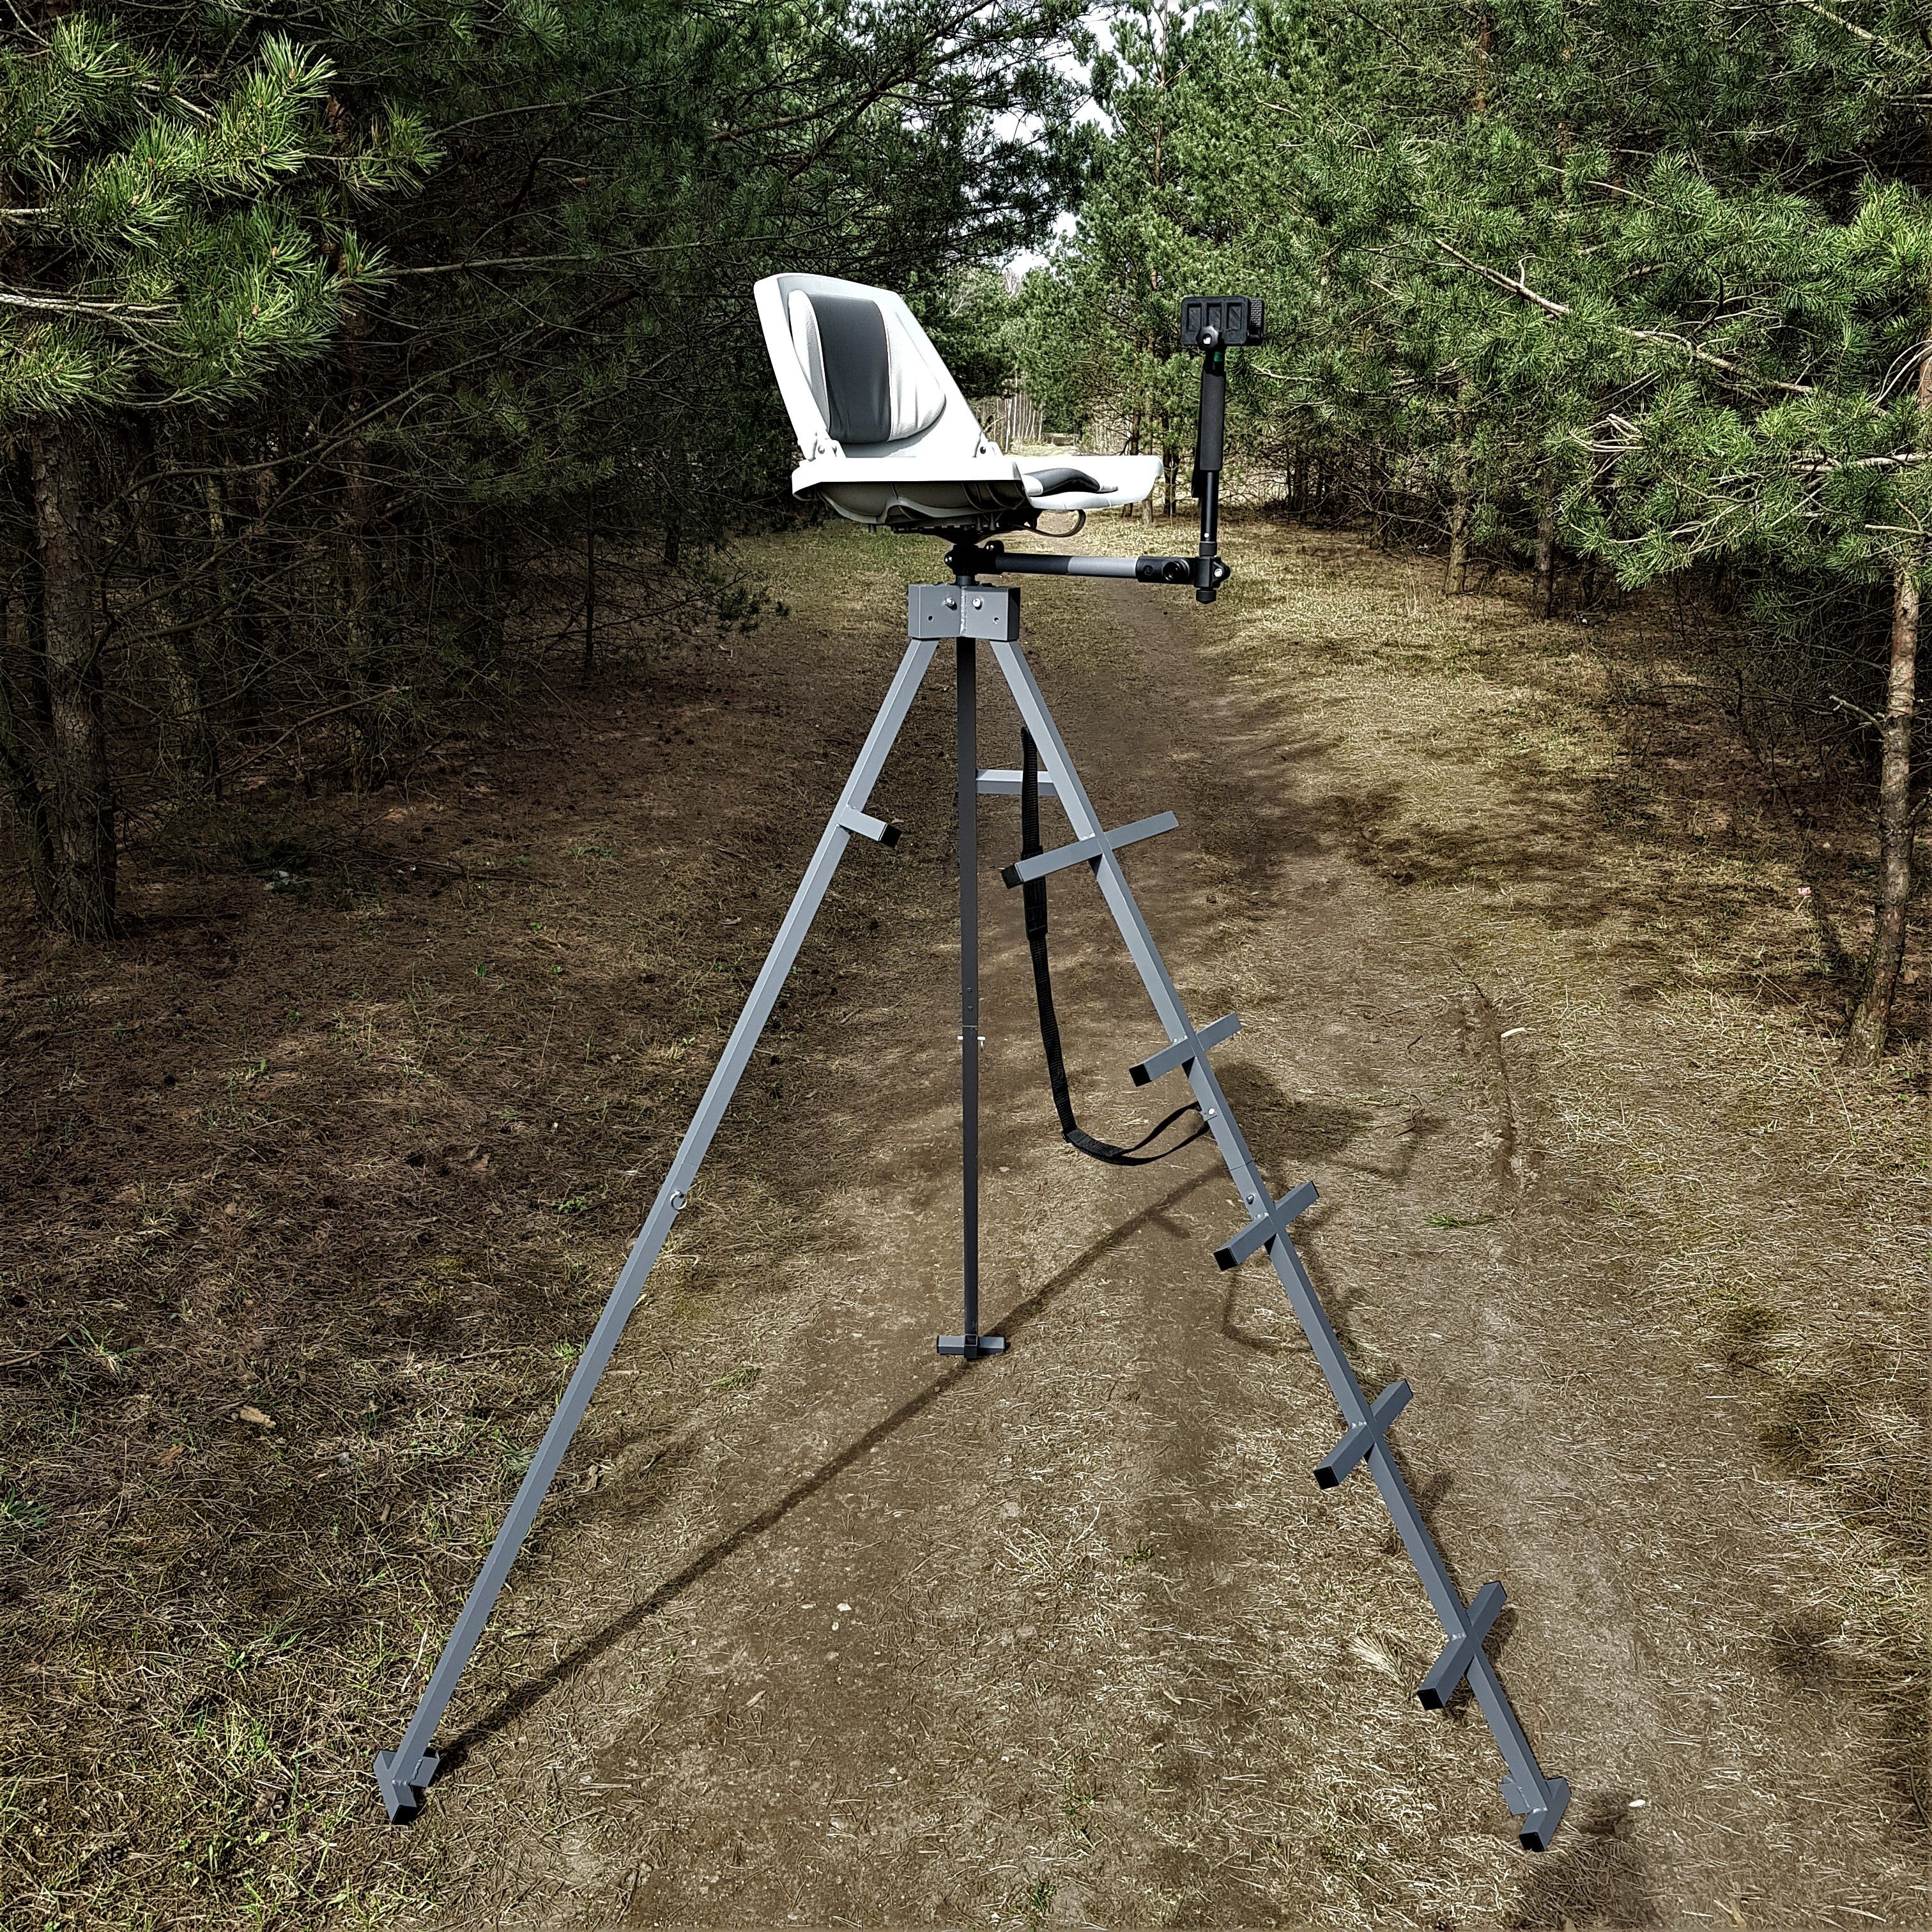 Hunting Stand Ultralight Portable Aluminium Tripod Your Stalking Game Success Comfort At Weight Only 11 K Hunting Stands Tripod Deer Stand Deer Stand